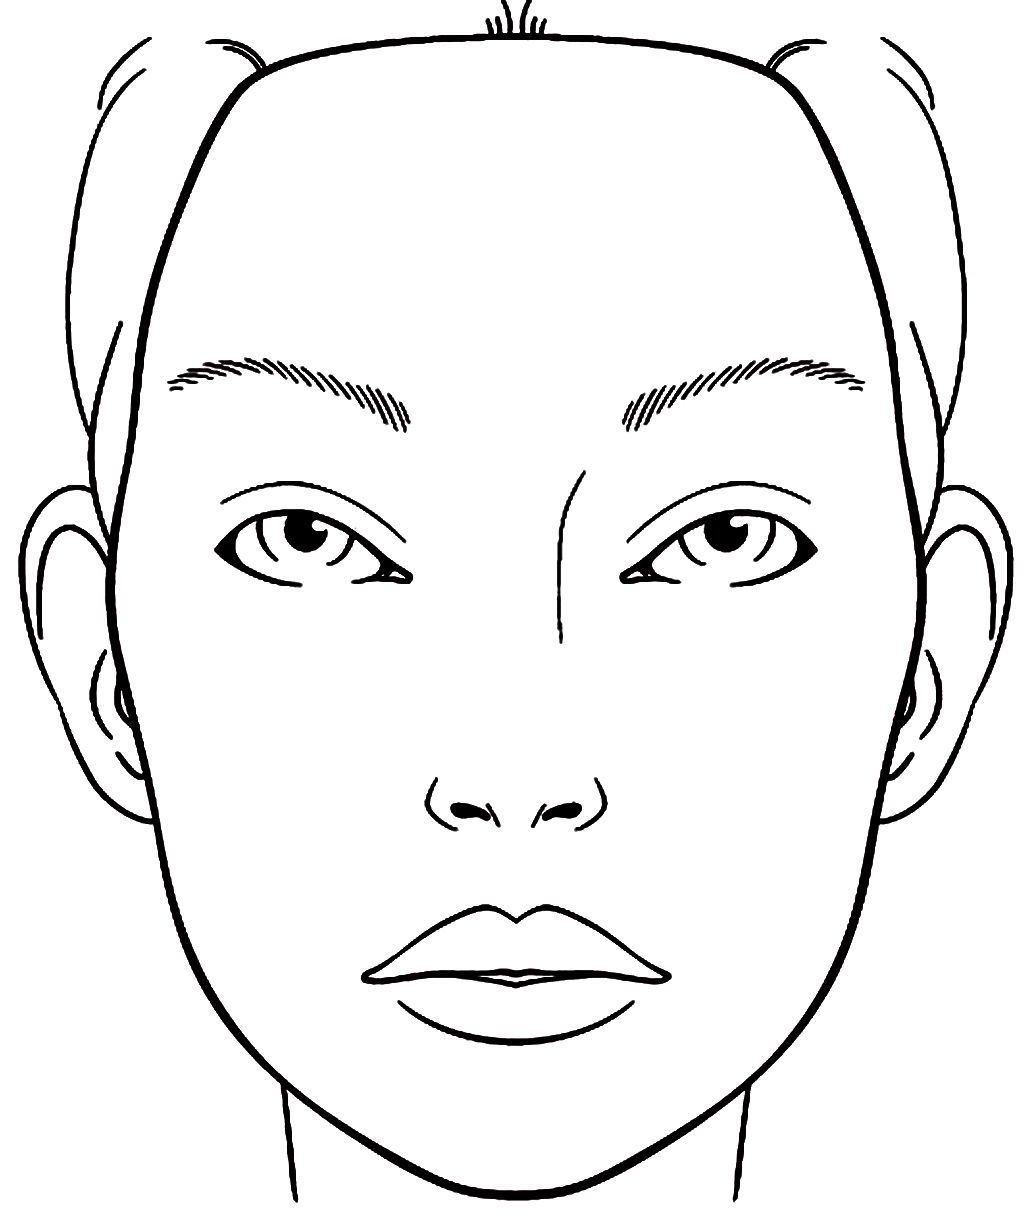 Blank Face Chart Sketch Coloring Page Rosto Para Maquiar Croqui